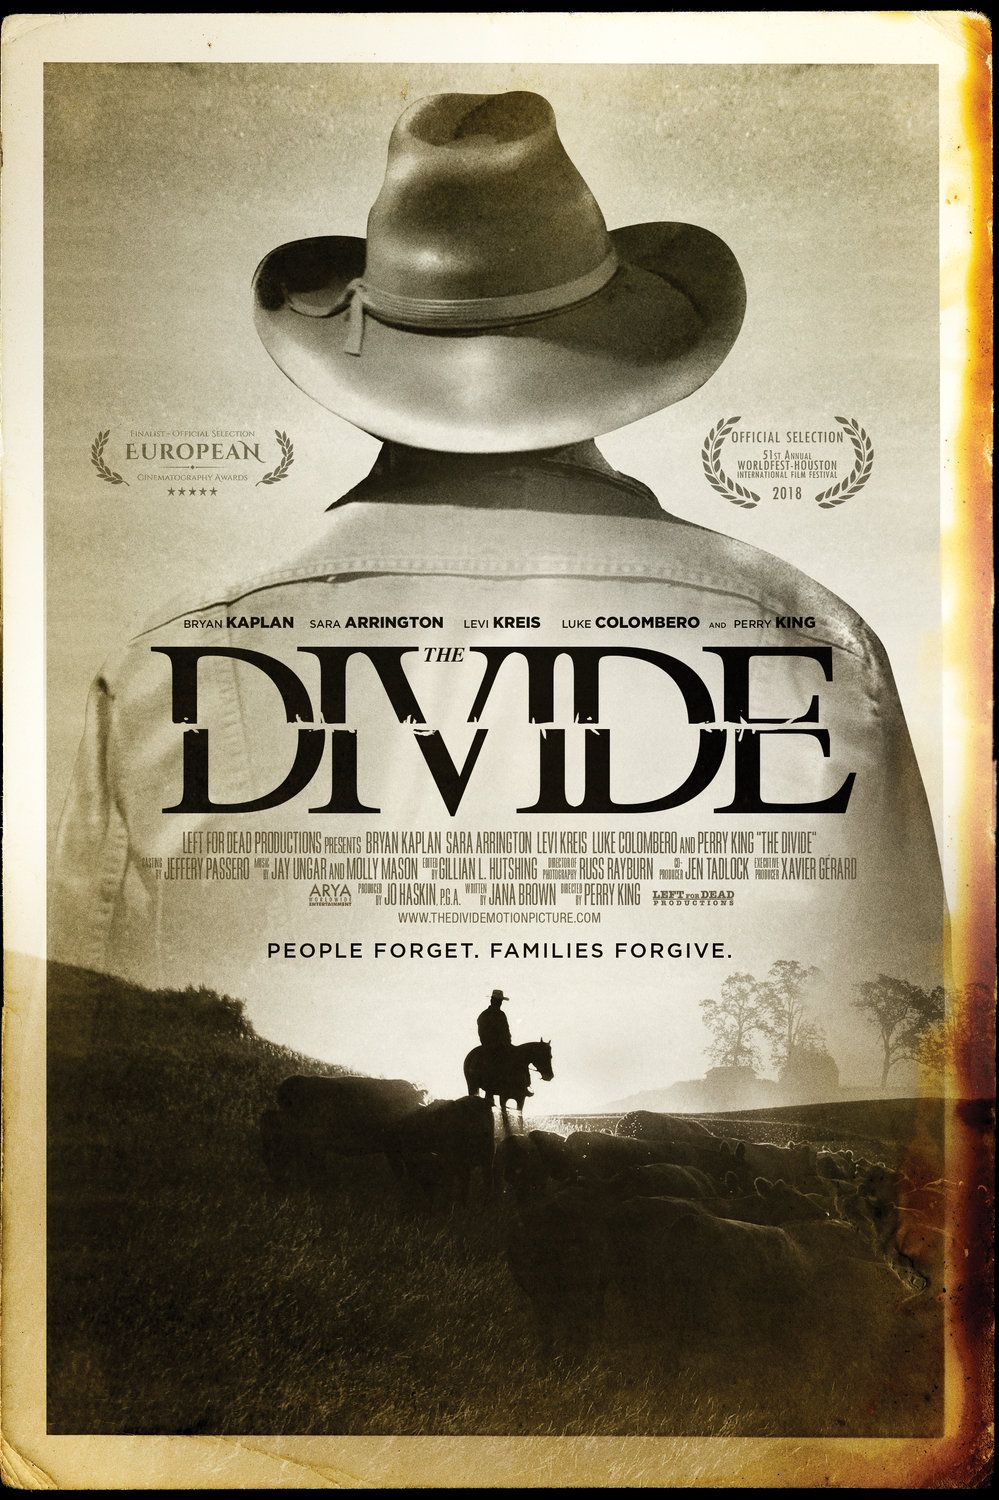 The Divide, Cover of Perry King movie title